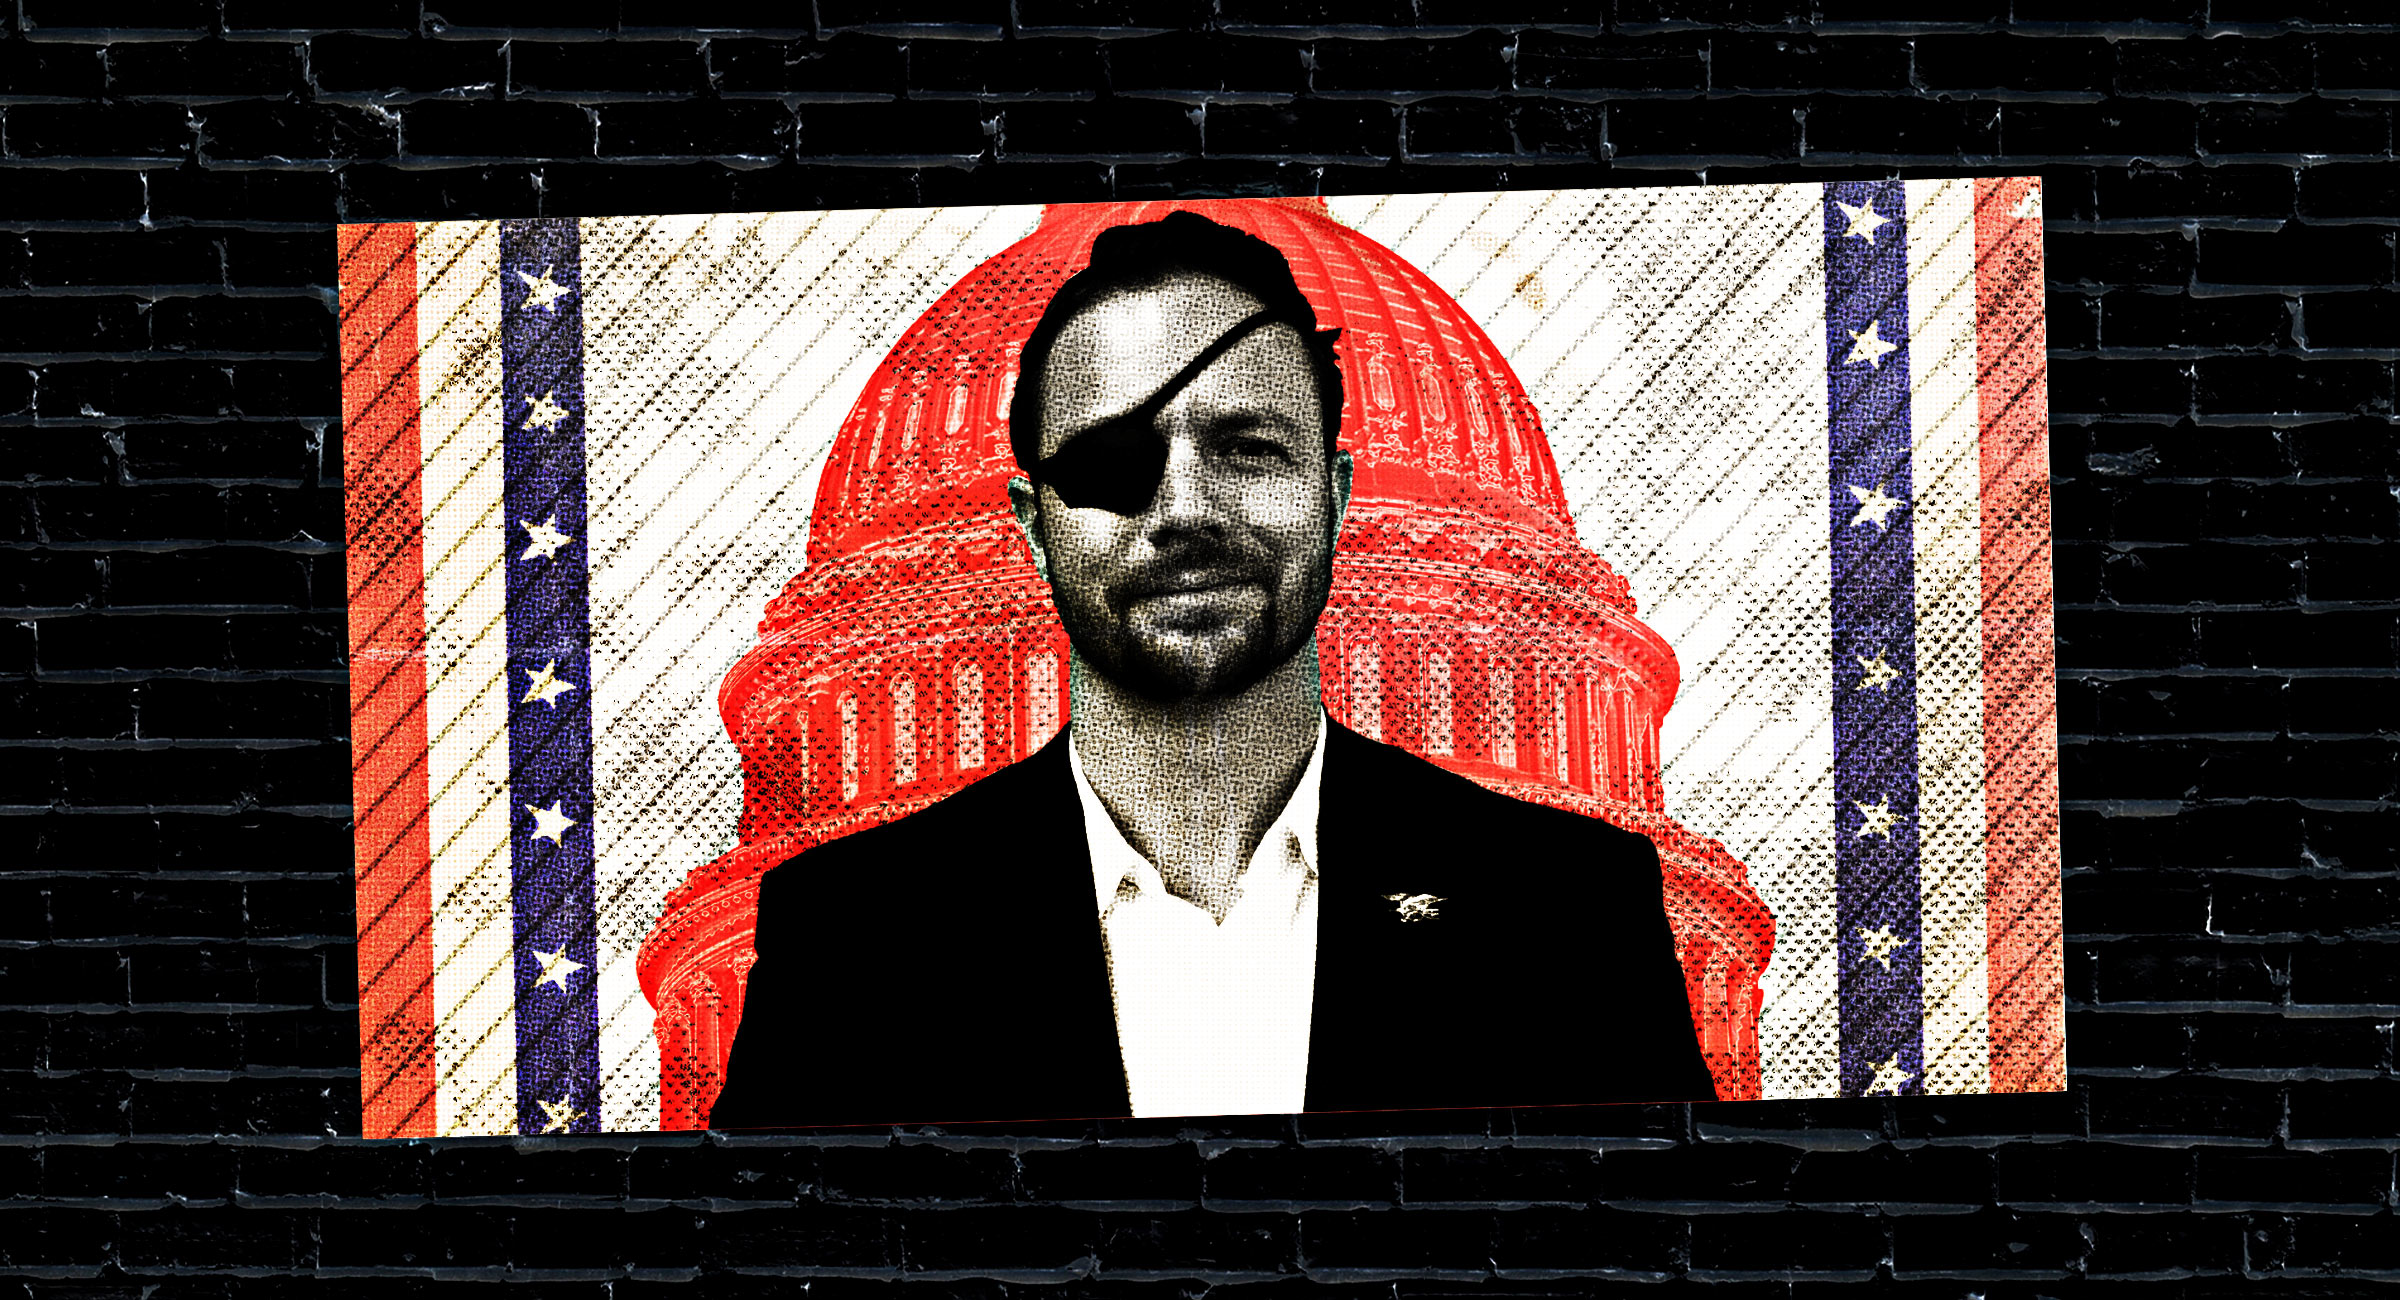 """Dan Crenshaw, a former Navy SEAL, was elected to Congress from the Houston area after running for office for the first time. """"He's just tenacious,"""" said his predecessor, retiring Rep. Ted Poe (R)."""